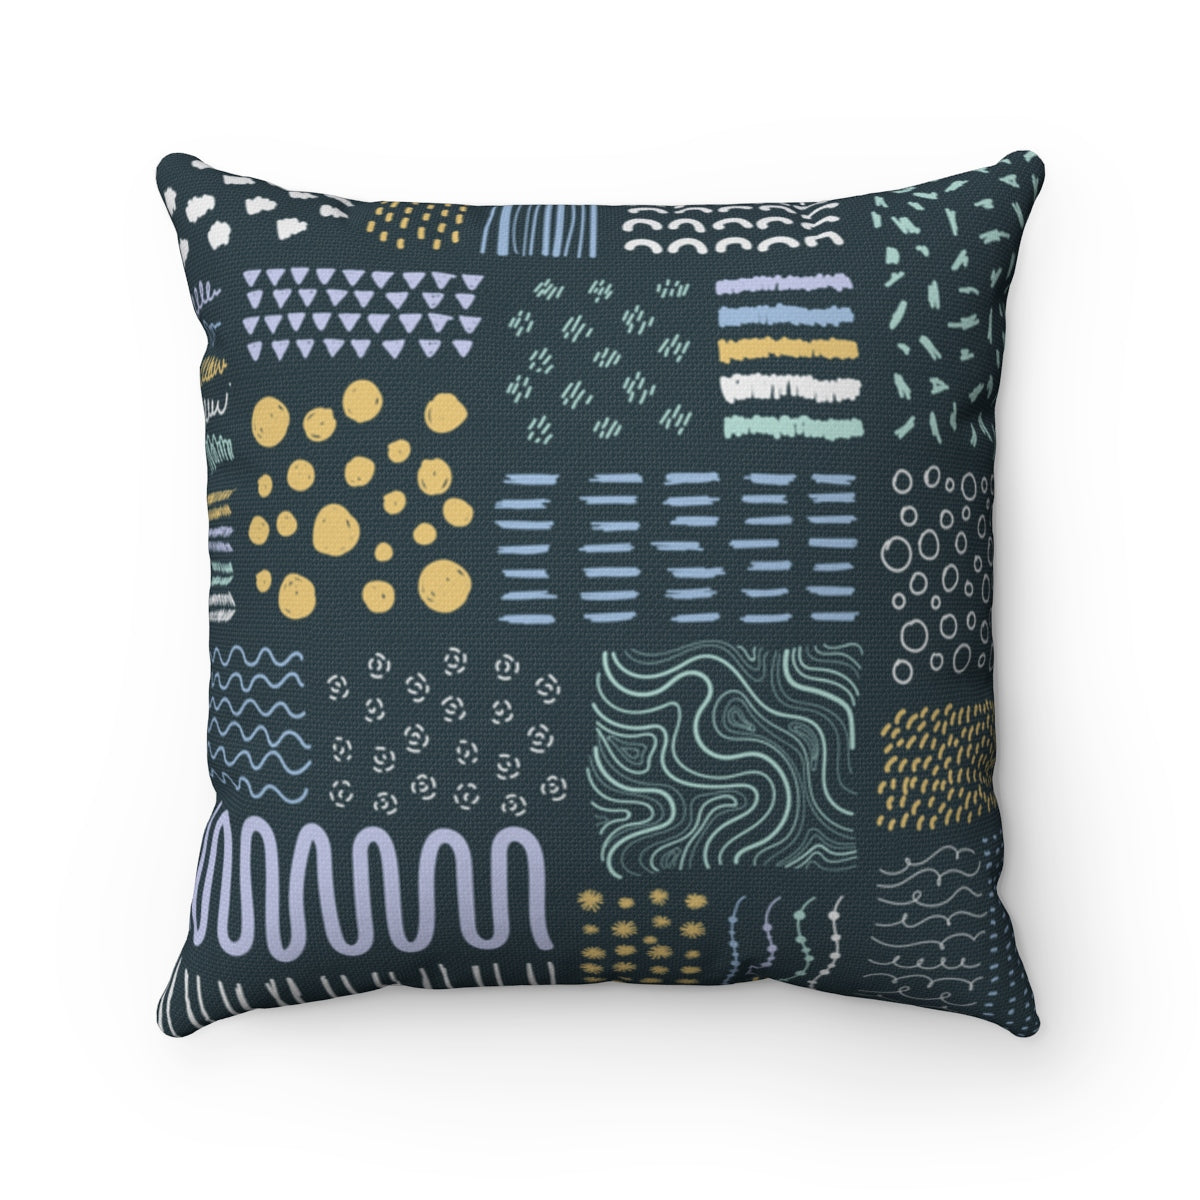 Boho Square Pillow